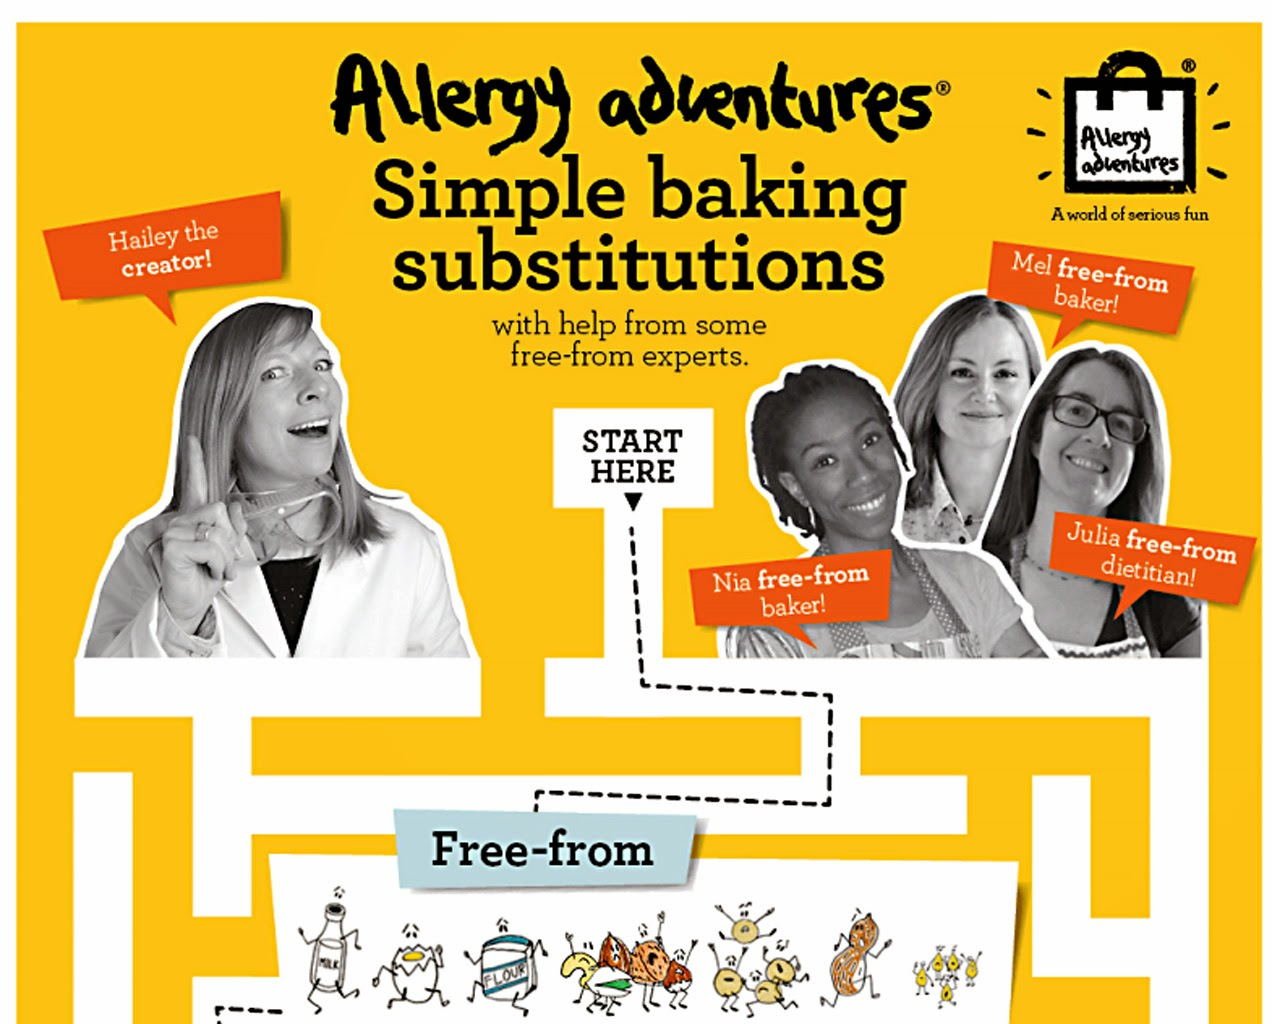 baking for allergies, how to substitute ingredients